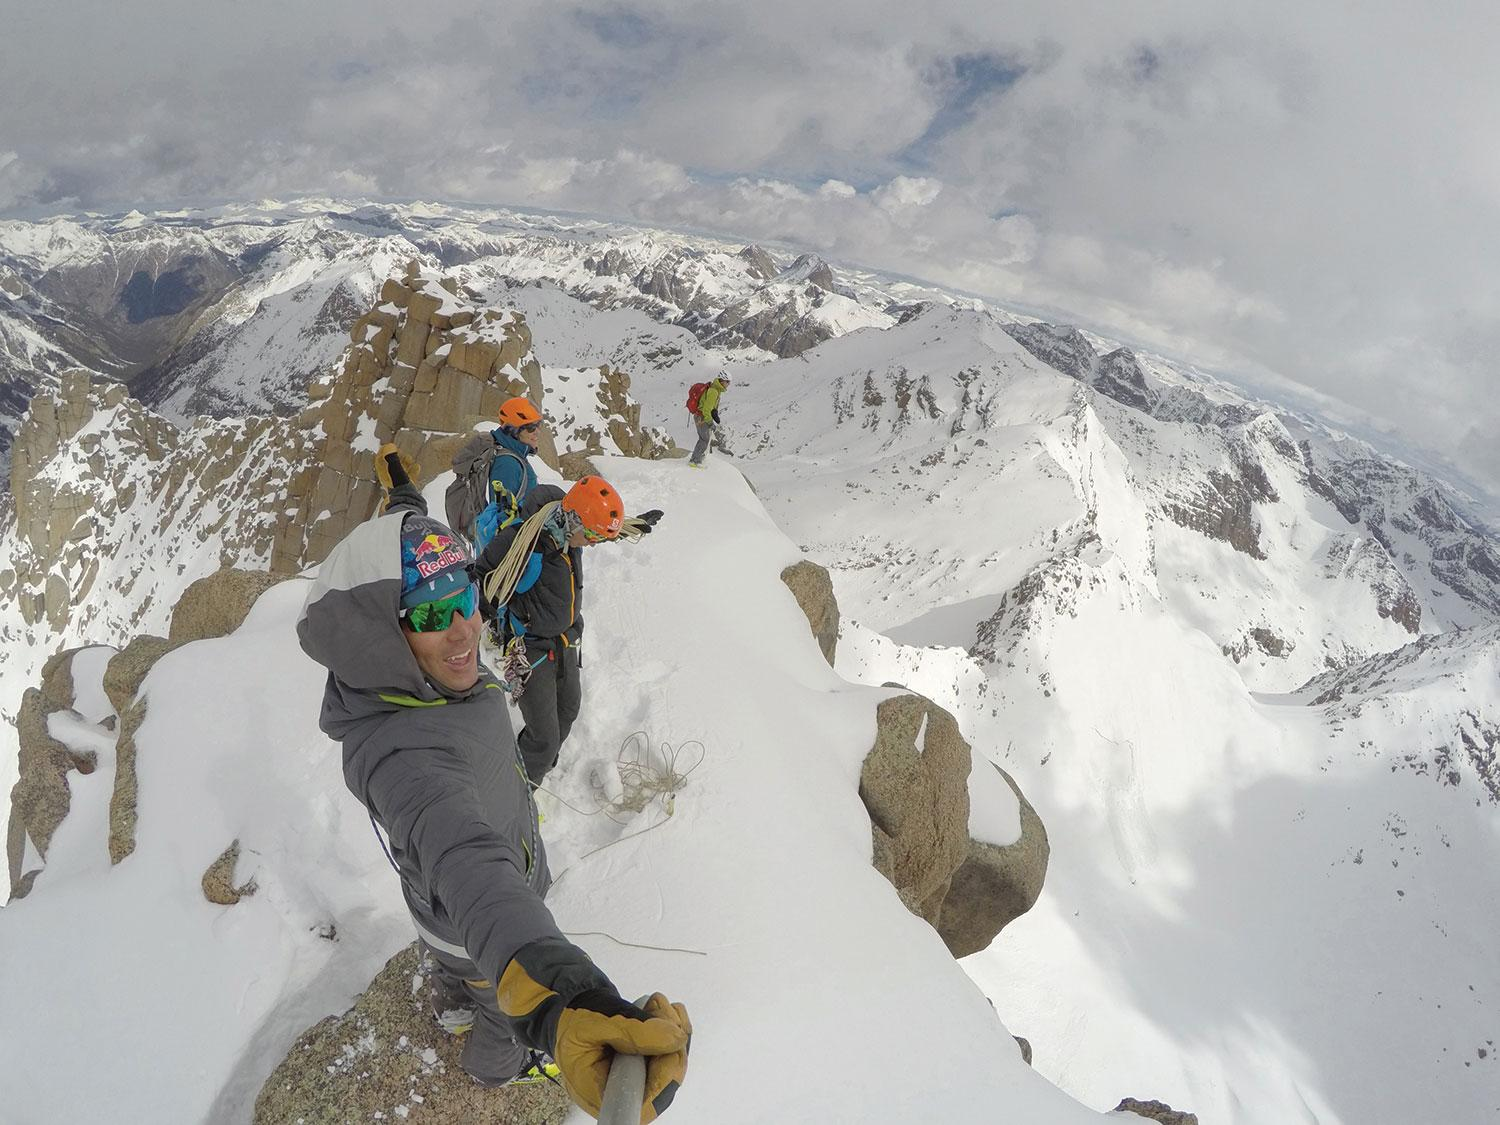 Chris Davenport, Christy and Ted Mahon summiting Jagged Mountain